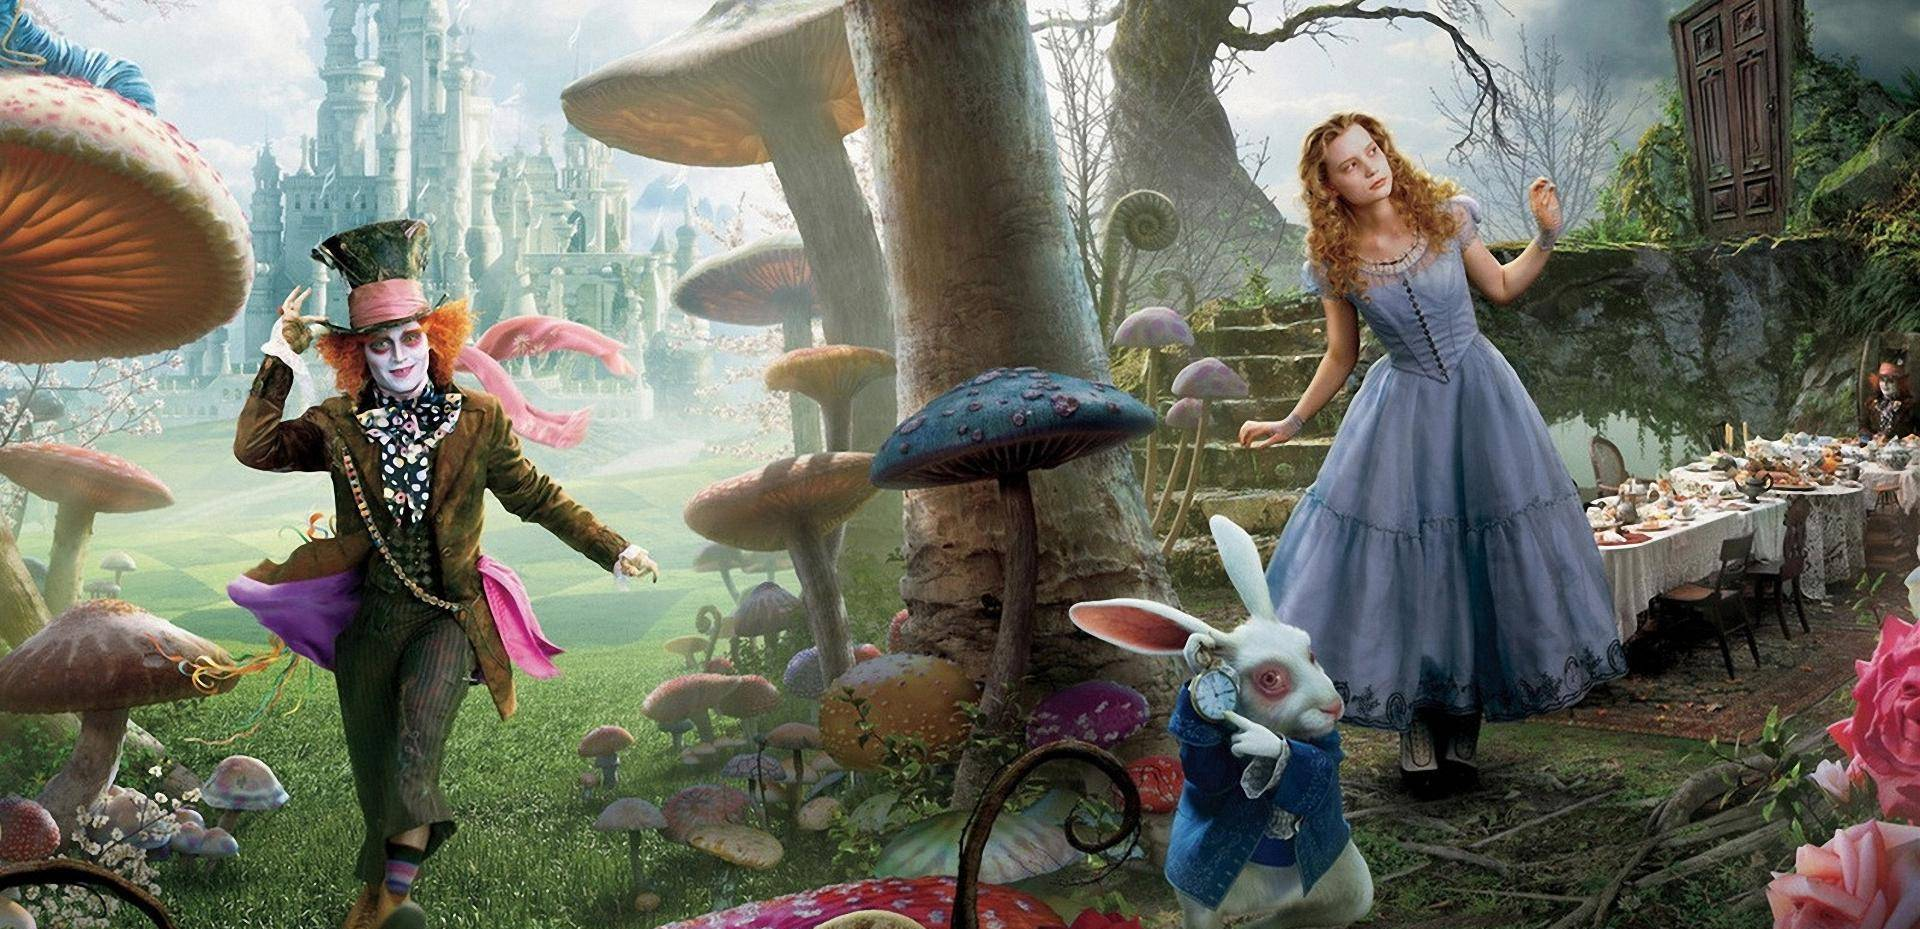 good thesis for alice in wonderland Taking 'alice in wonderland' as an analogy, the thesis design project endeavours to smooth transitions between public and private spaces, just like how alice travels through portals project intended.